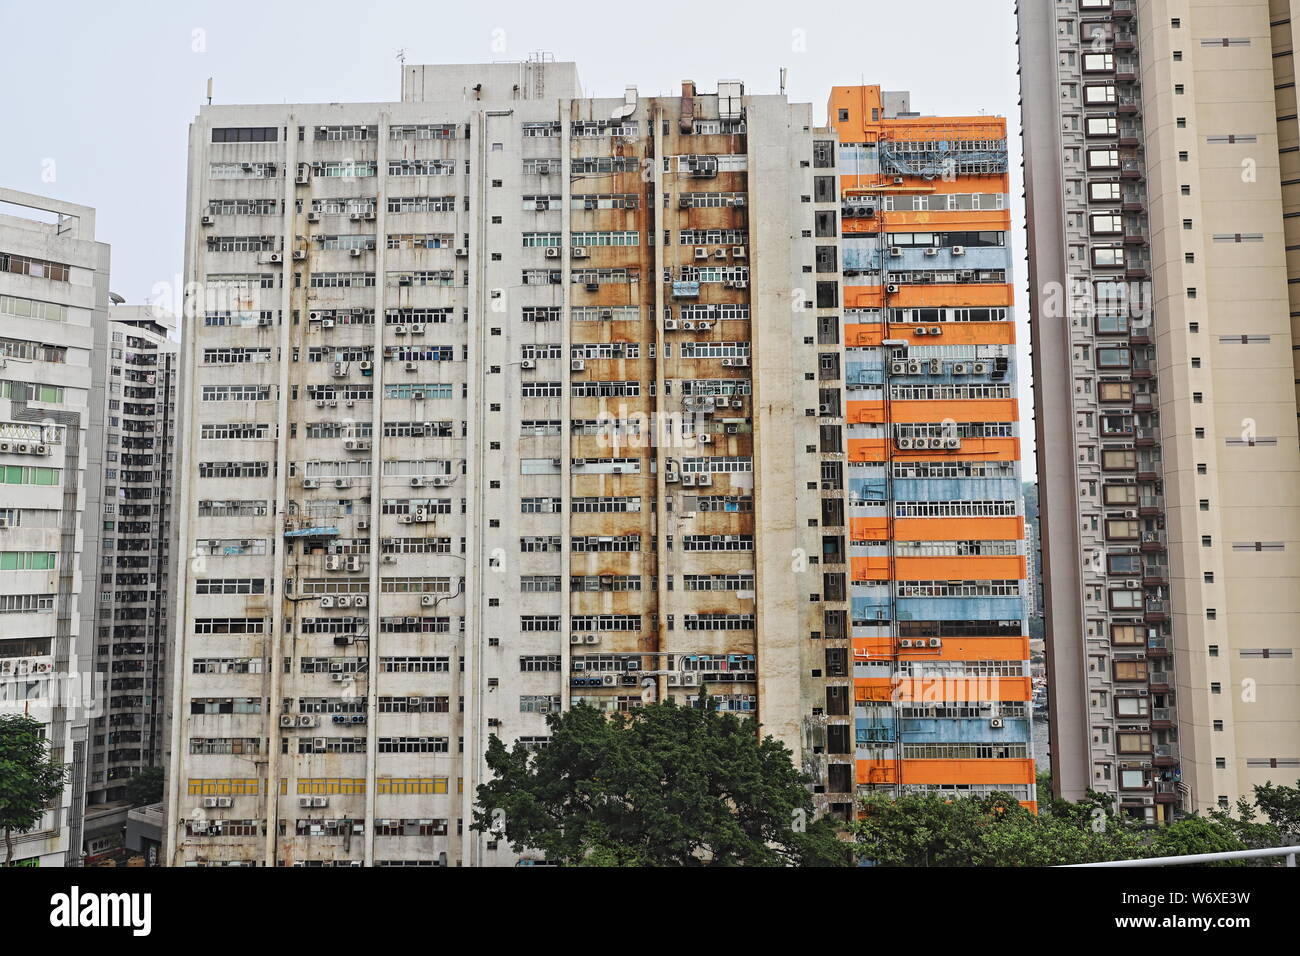 Crowded High Rise Residential Accommodation, Aberdeen, Hong Kong Stock Photo